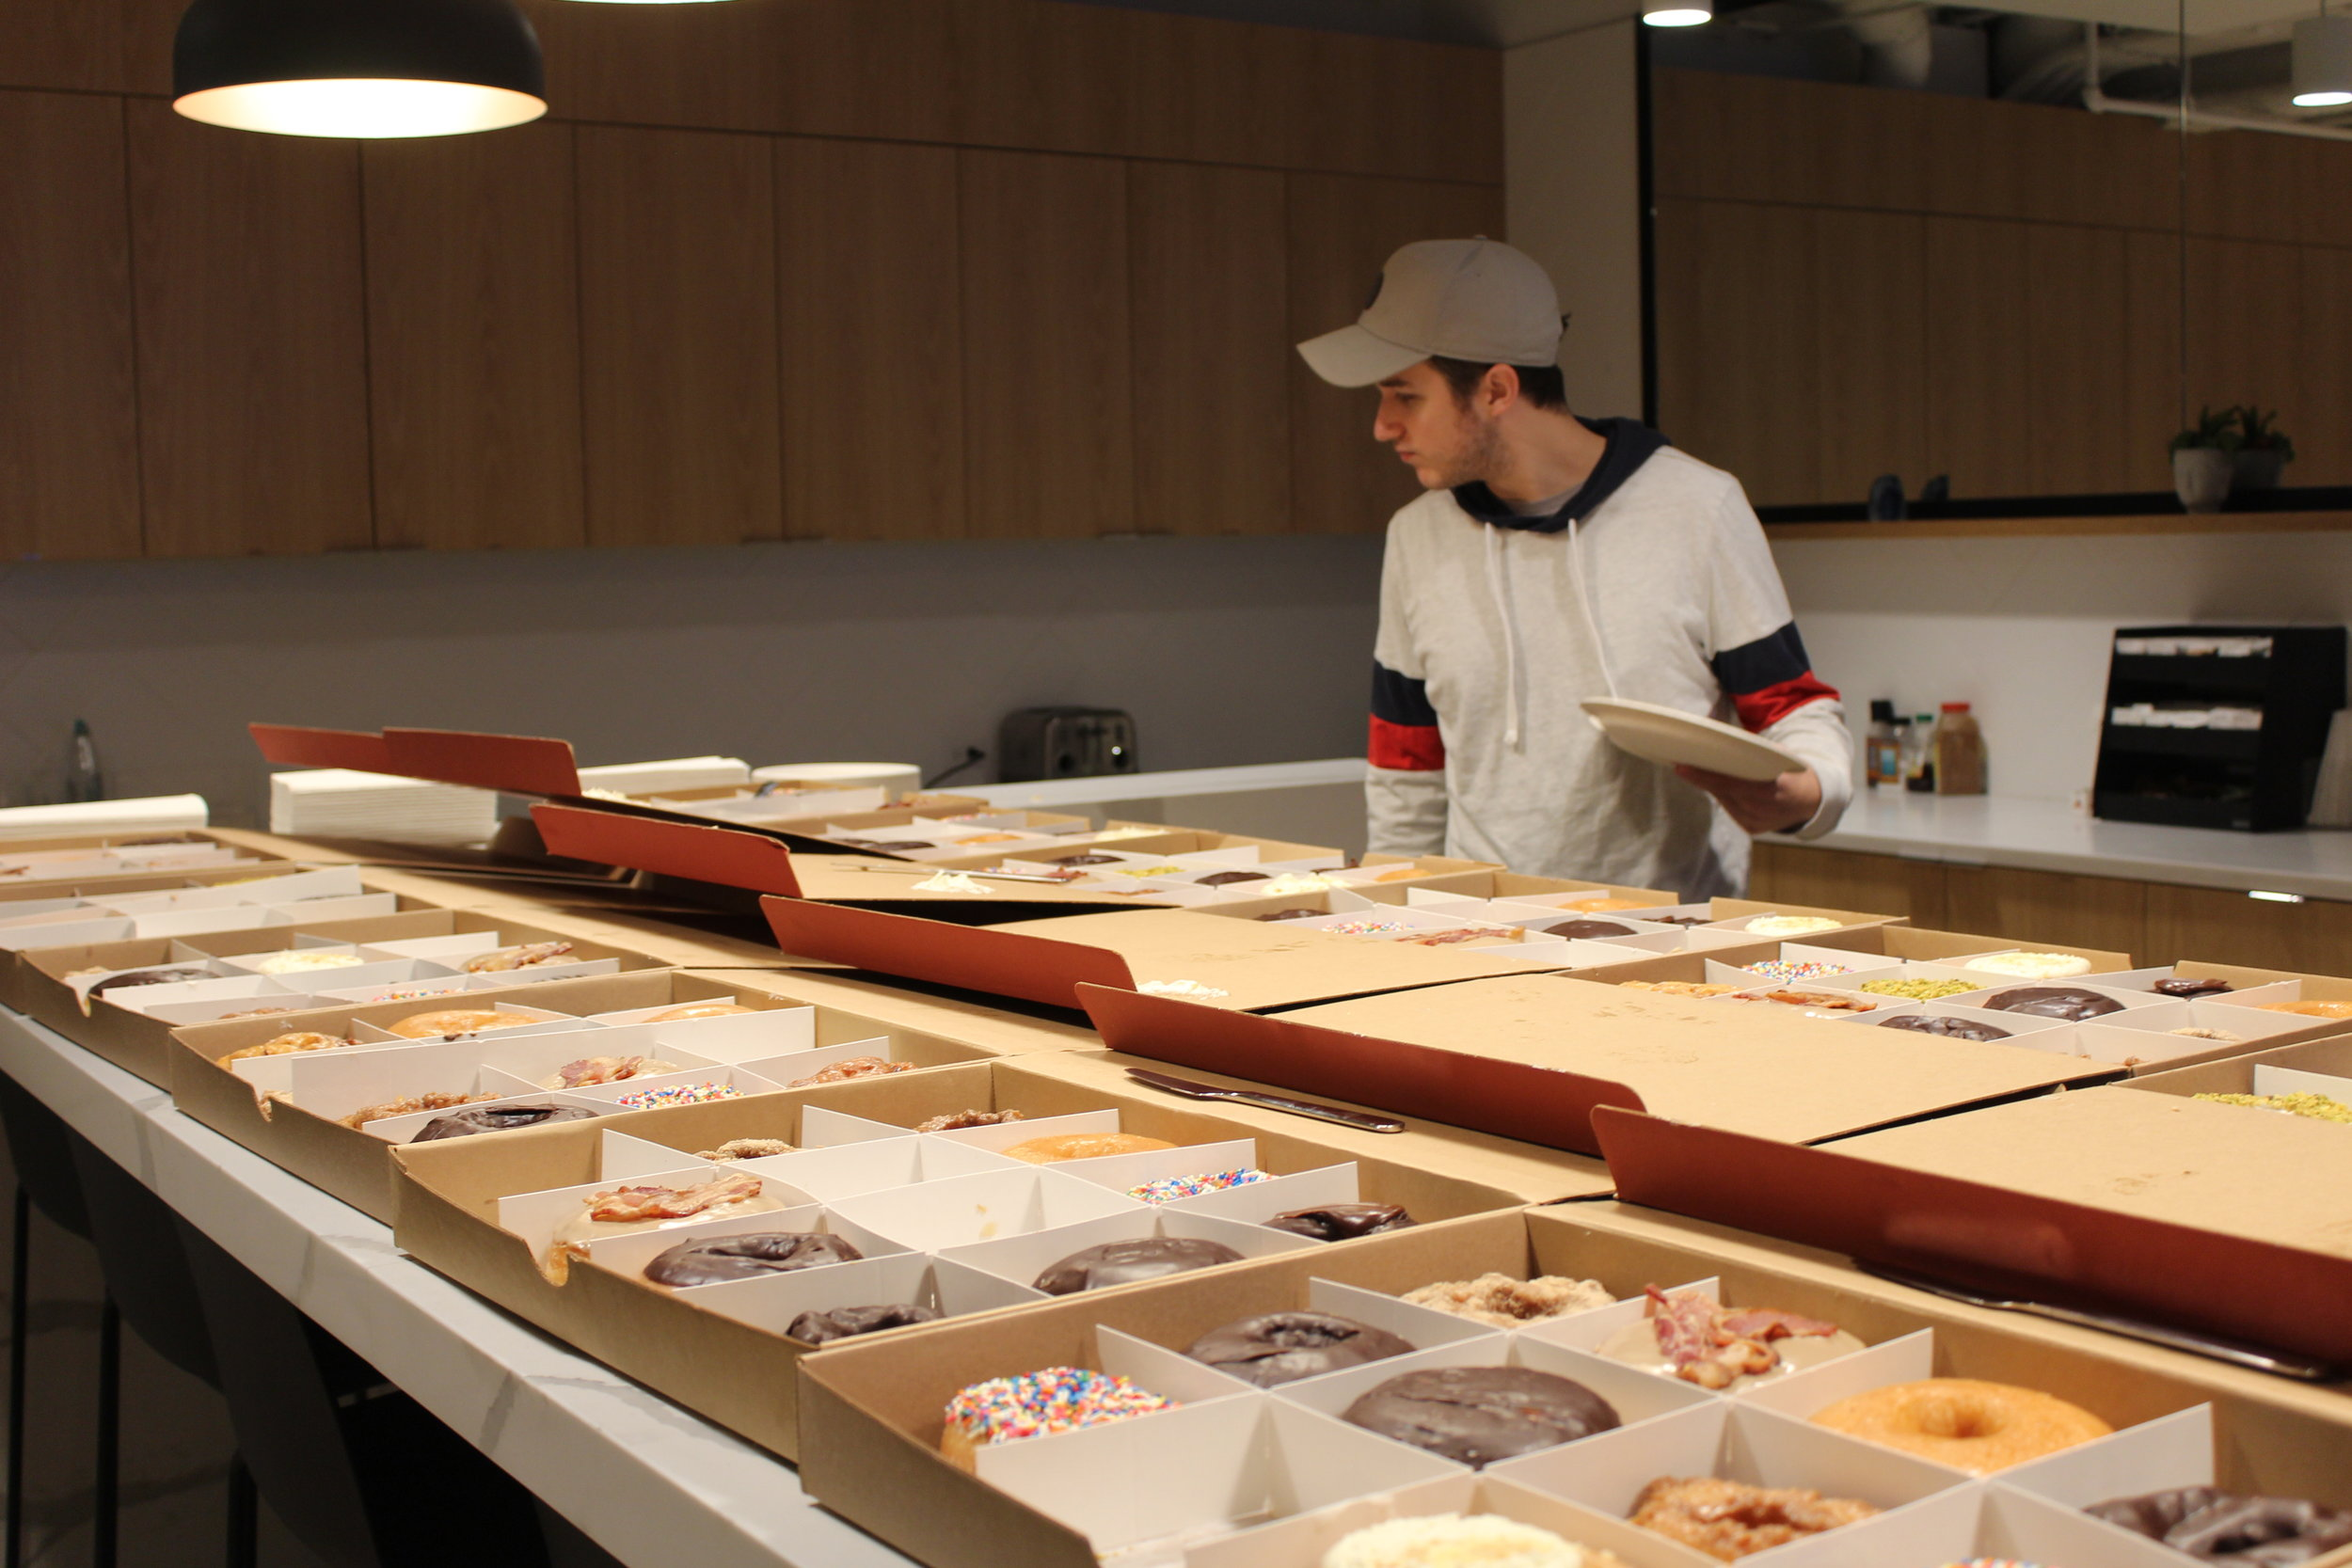 One employee overlooks dozens of donuts set out for National Donut Day